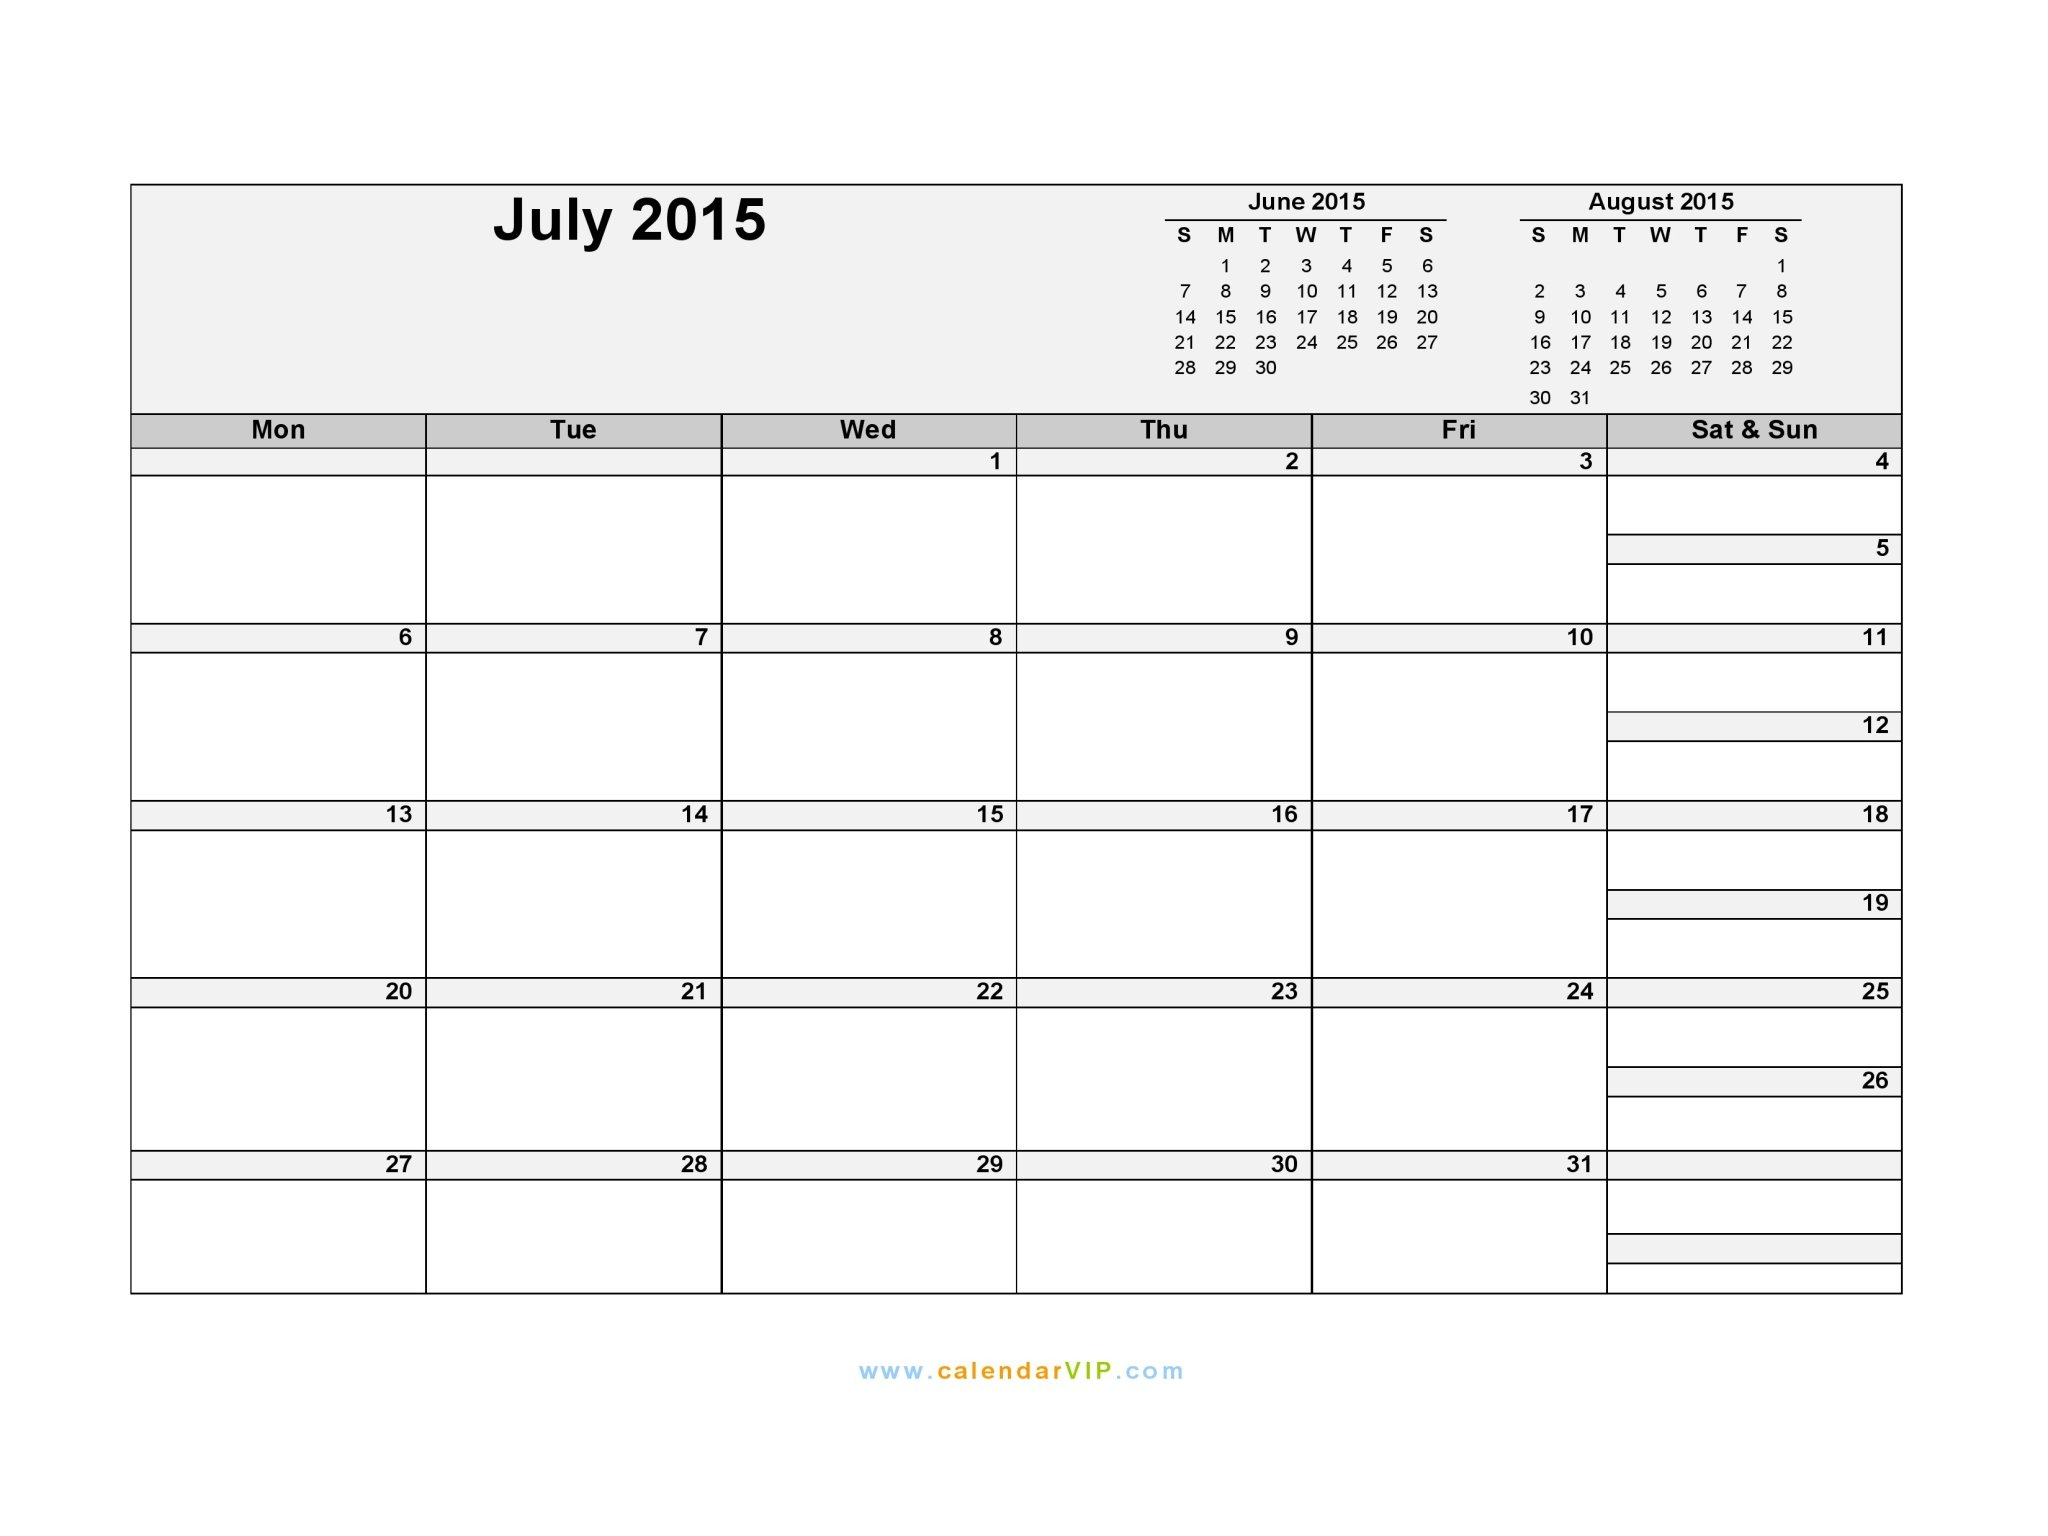 July 2015 Calendar - Blank Printable Calendar Template In 4 Week Calendar Printable